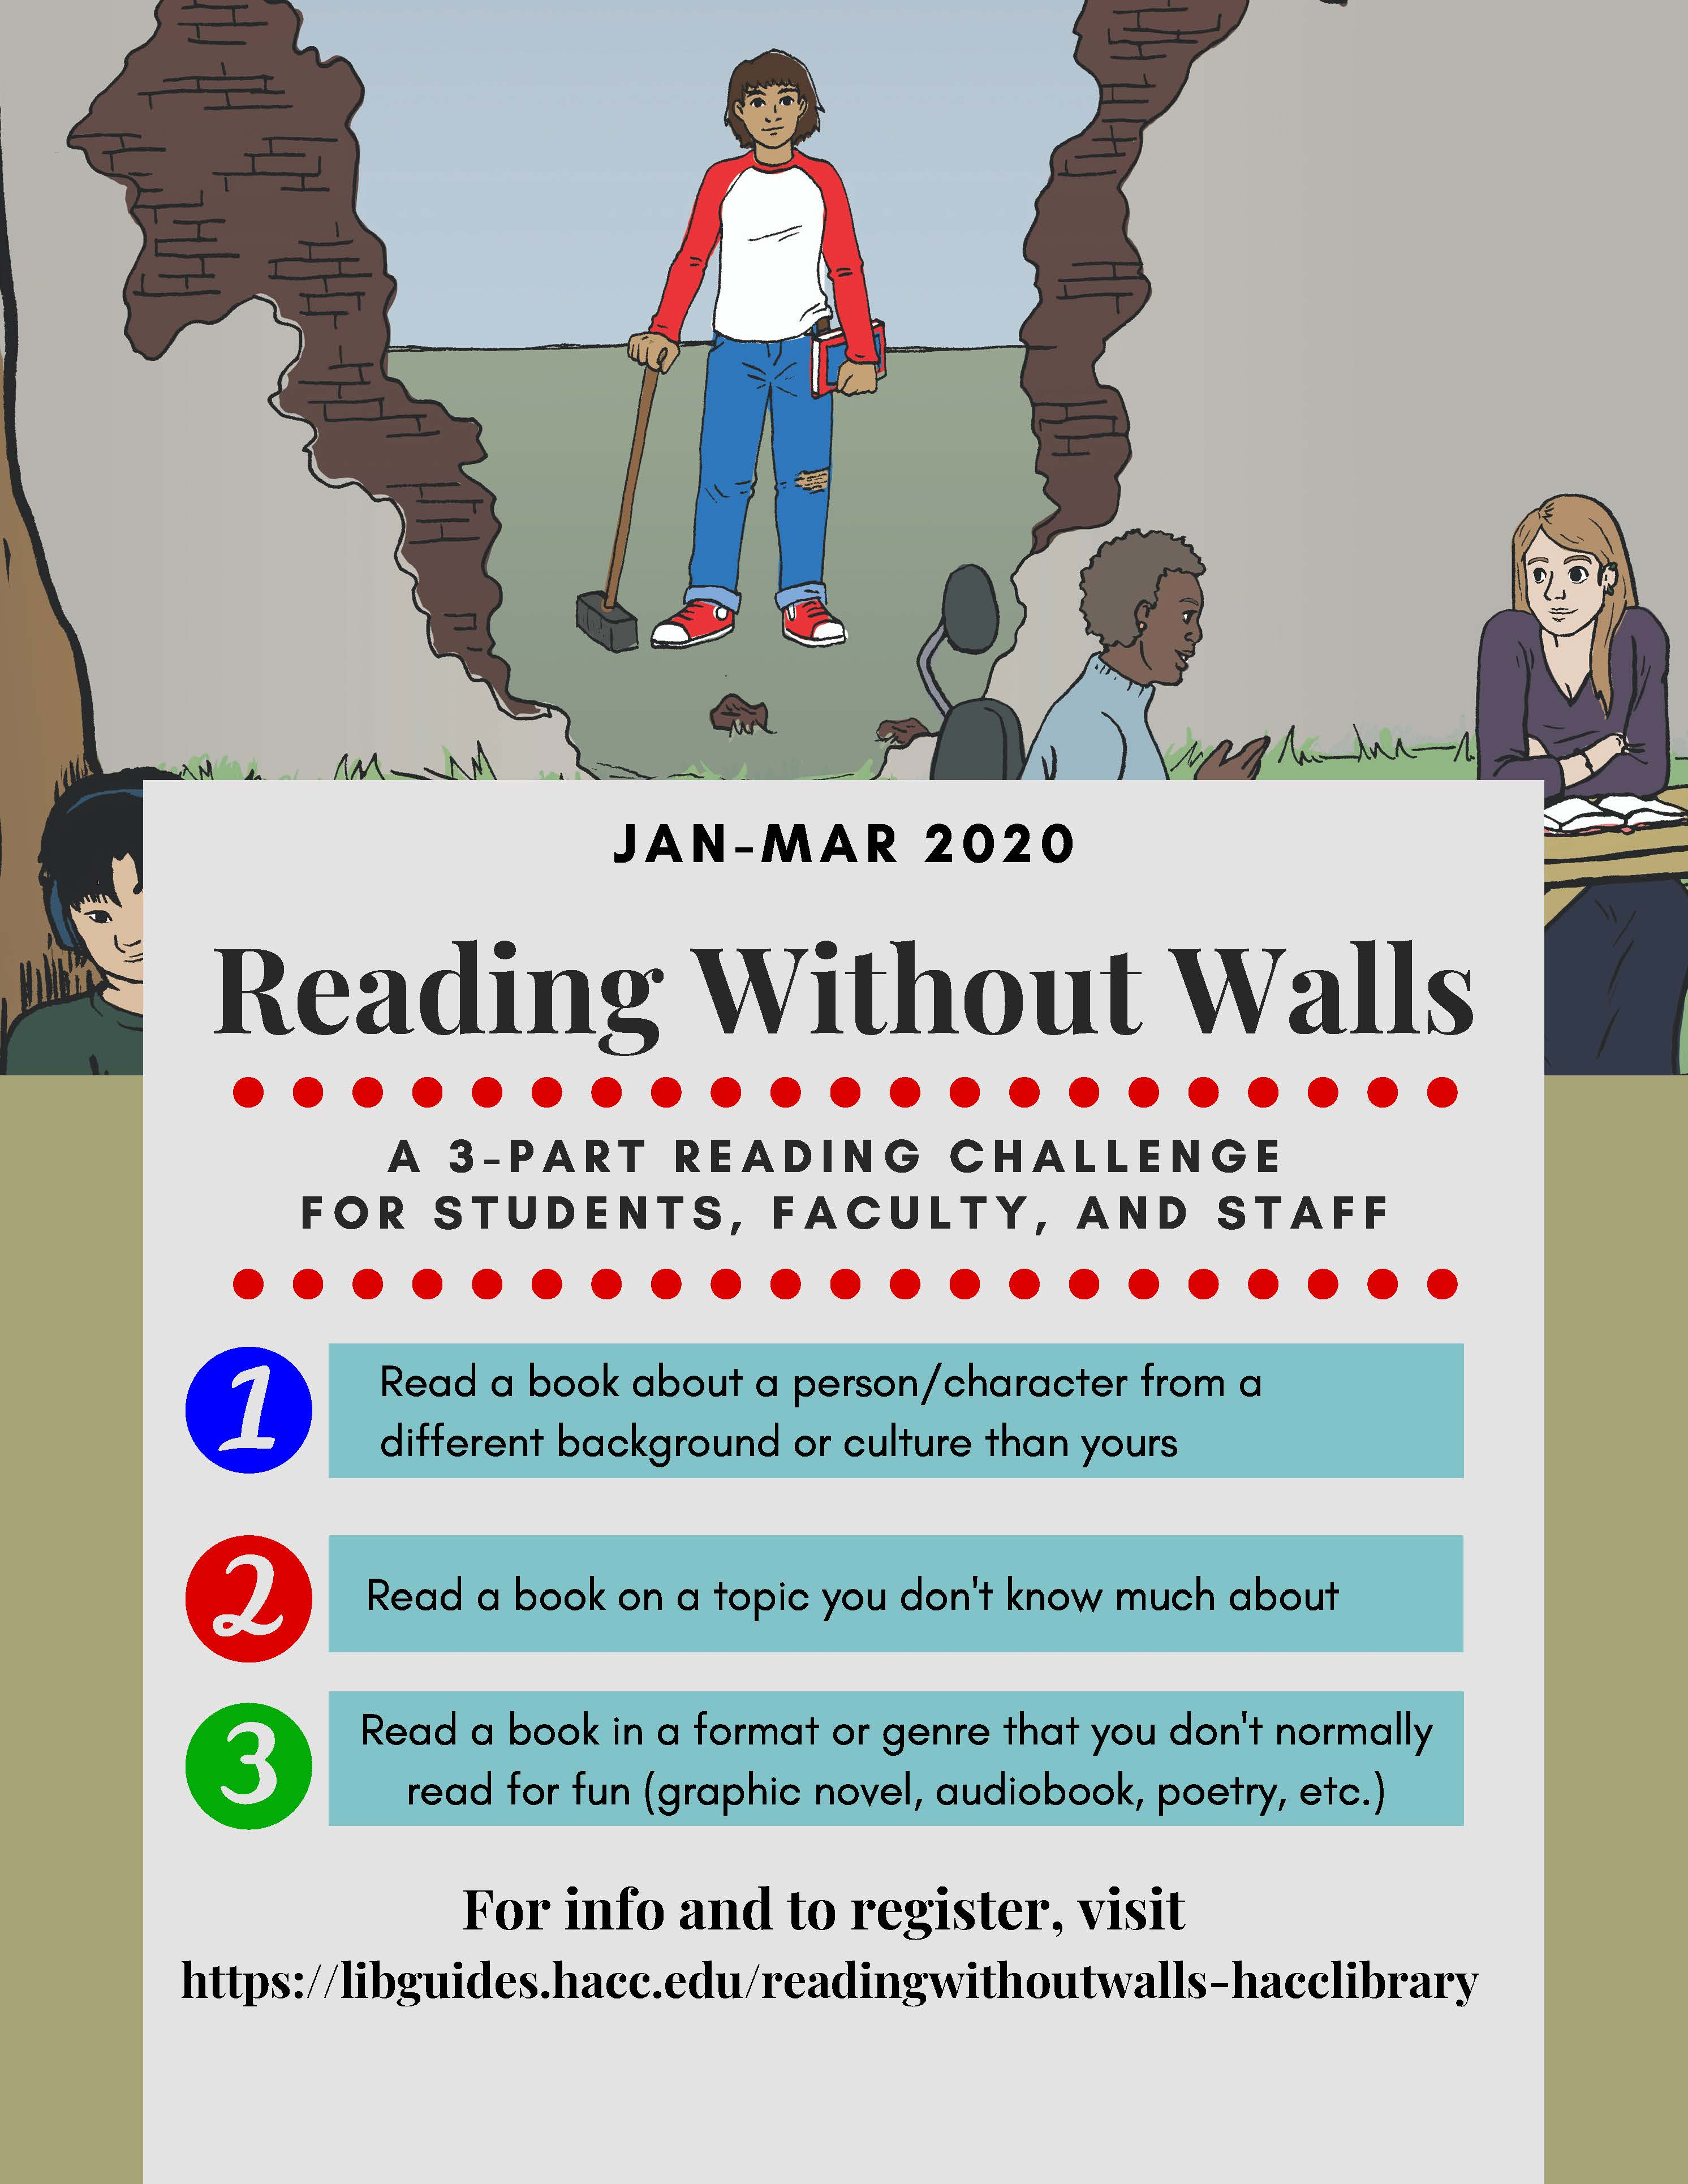 reading without walls image